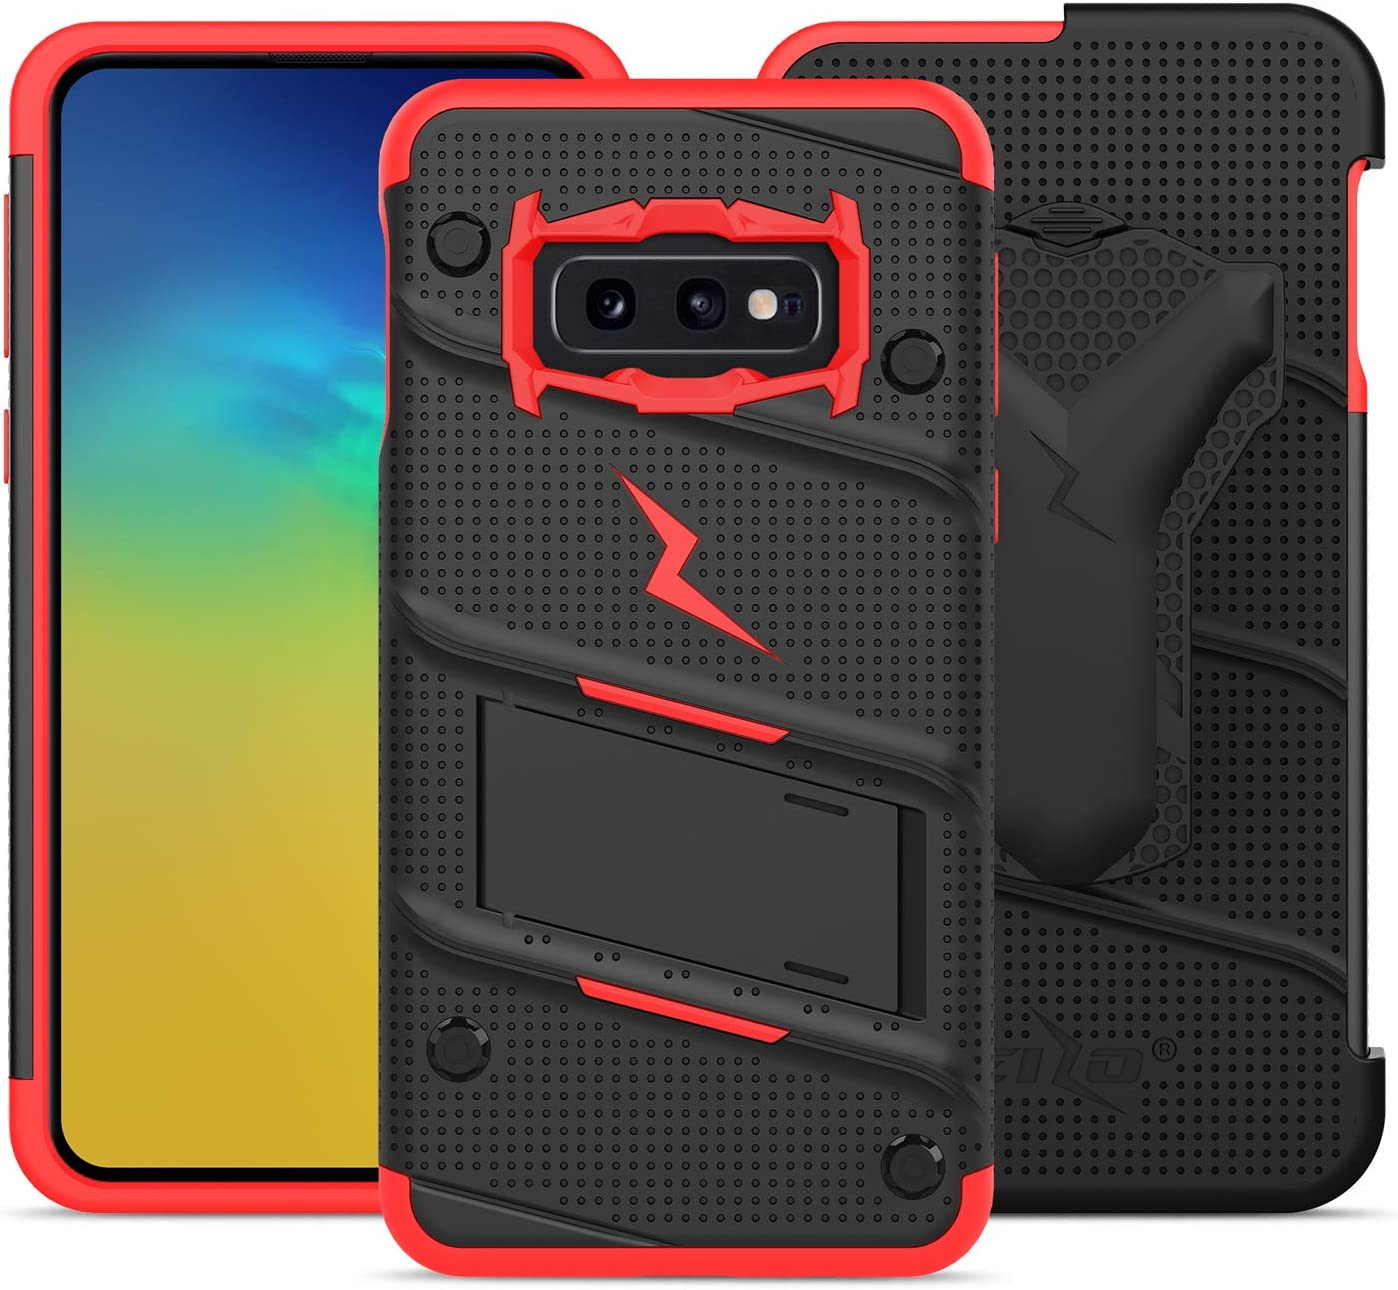 ZIZO Bolt Galaxy S10e Case Heavy-Duty Military Grade Drop Tested Bundle with Tempered Glass Screen Protector Holster and Kickstand Black Red